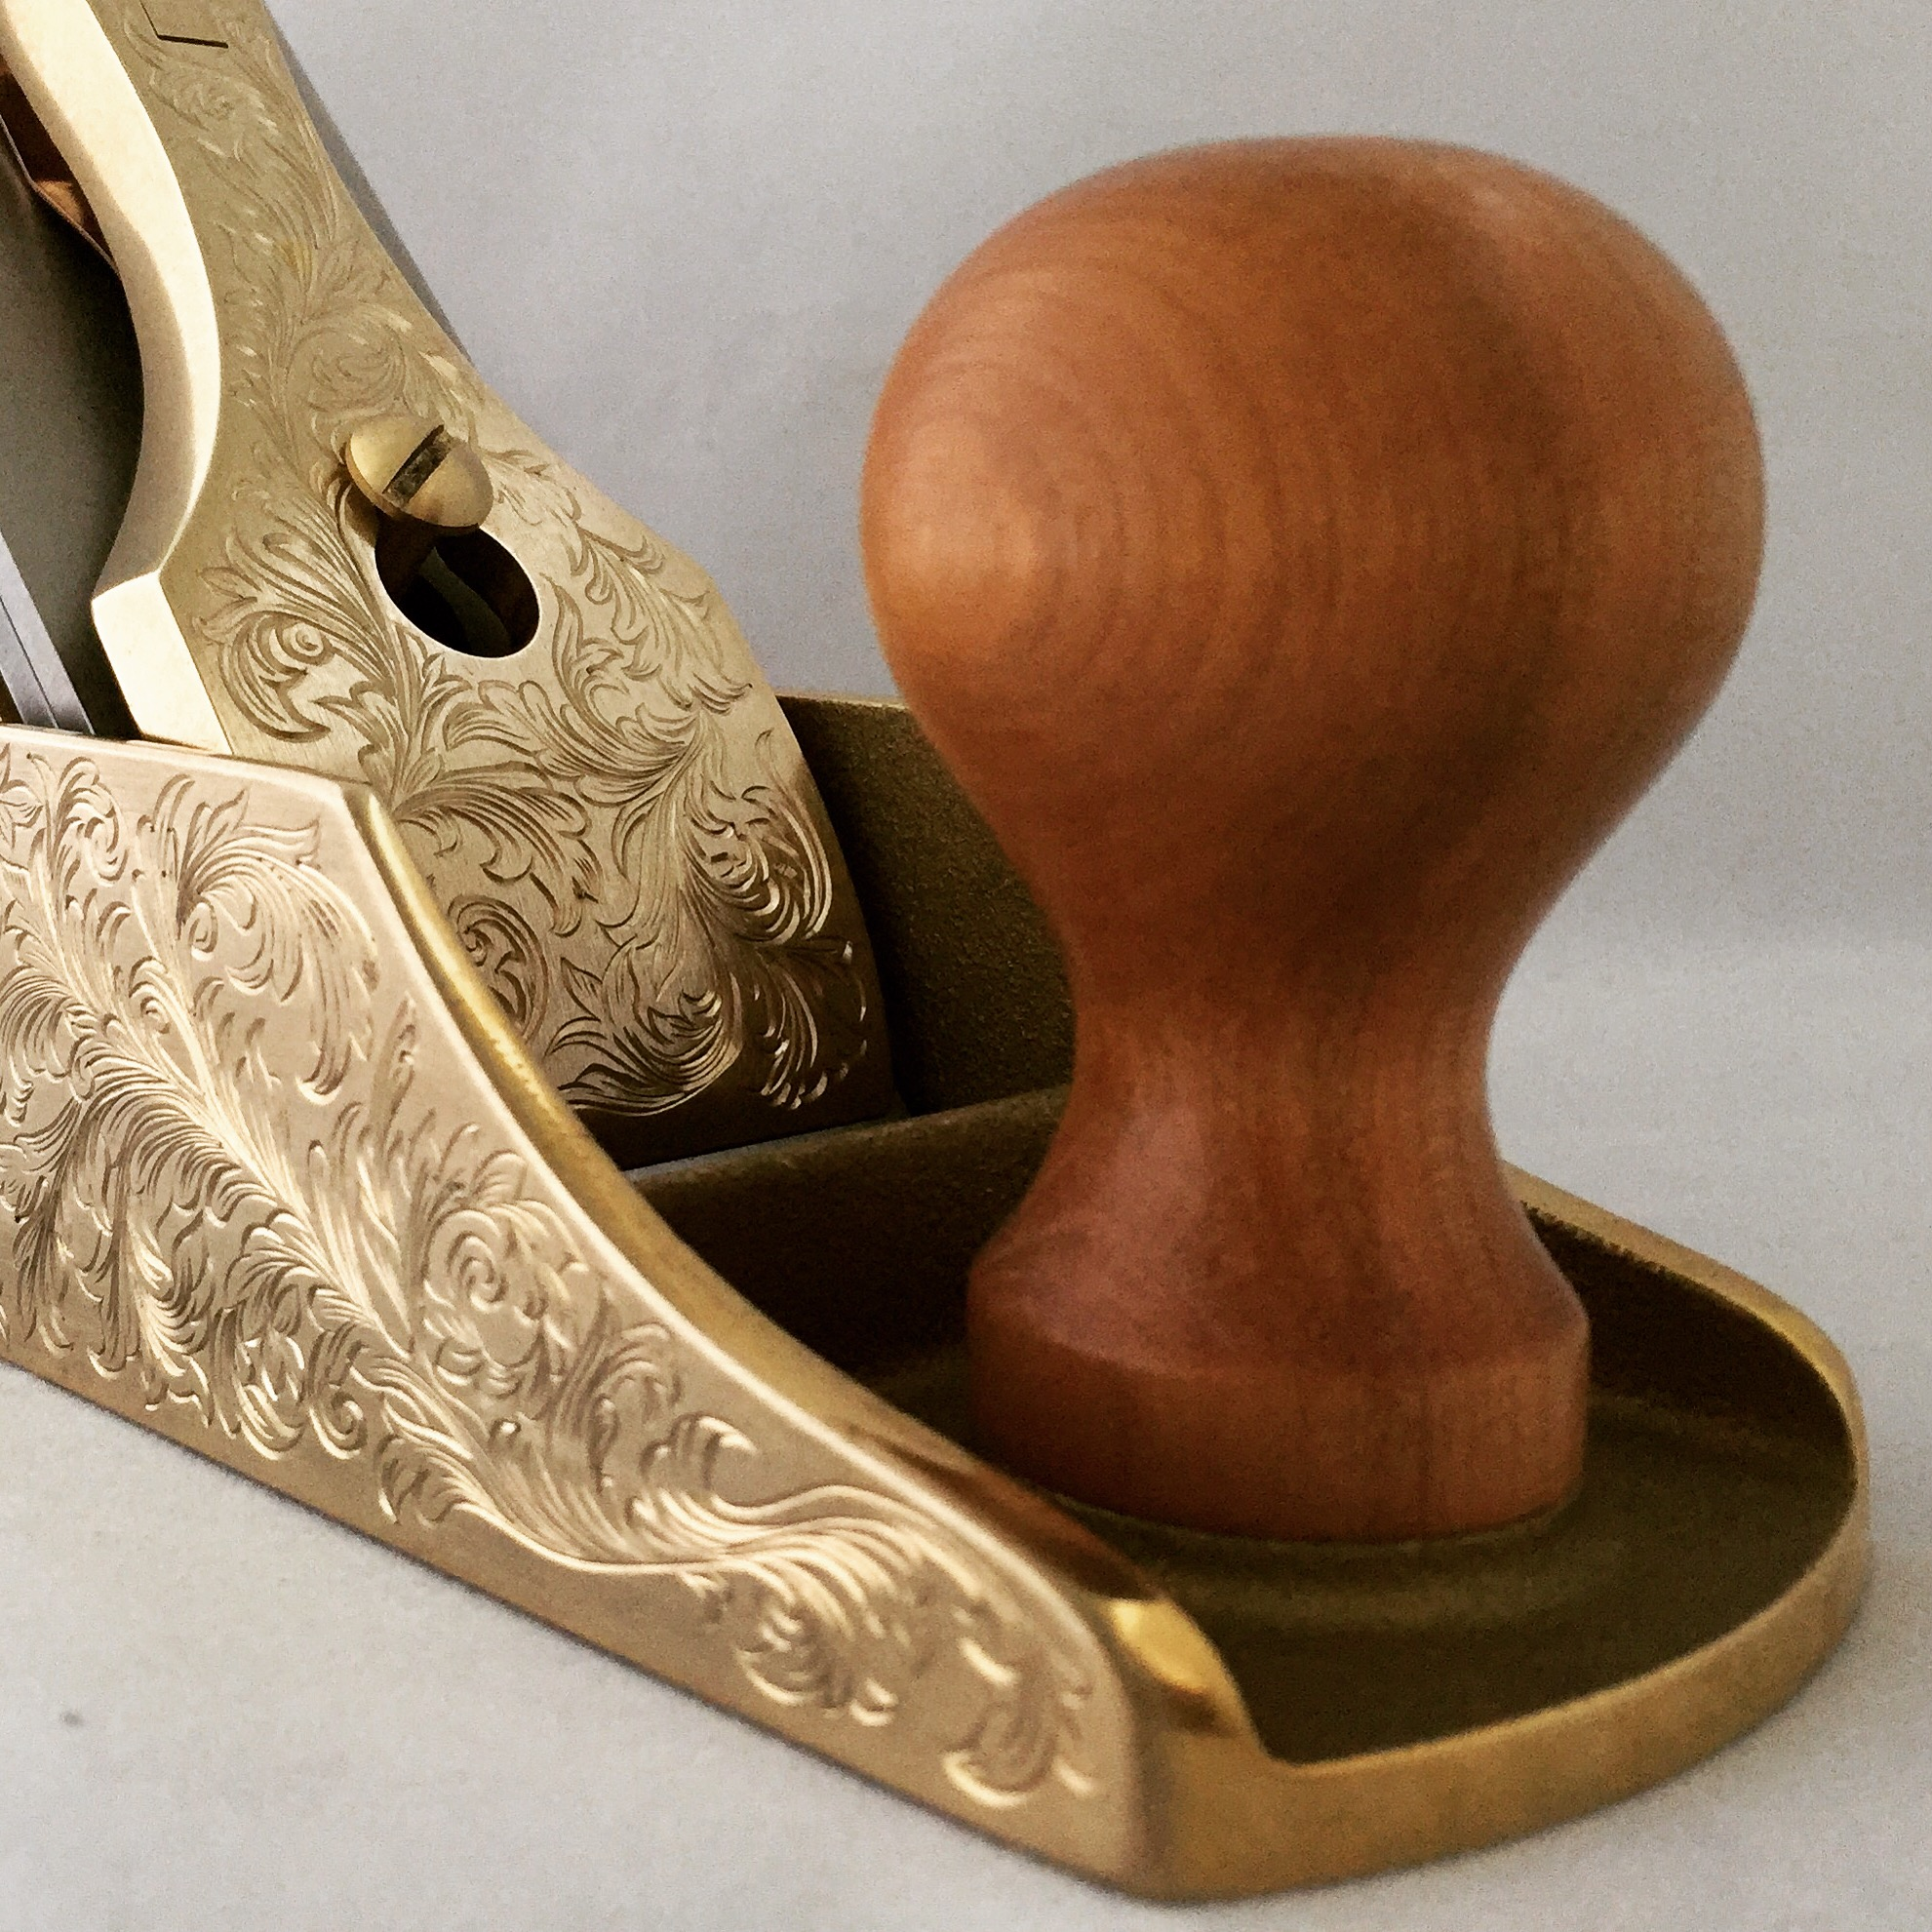 Closeup of gold handplane with ornate floral engravings